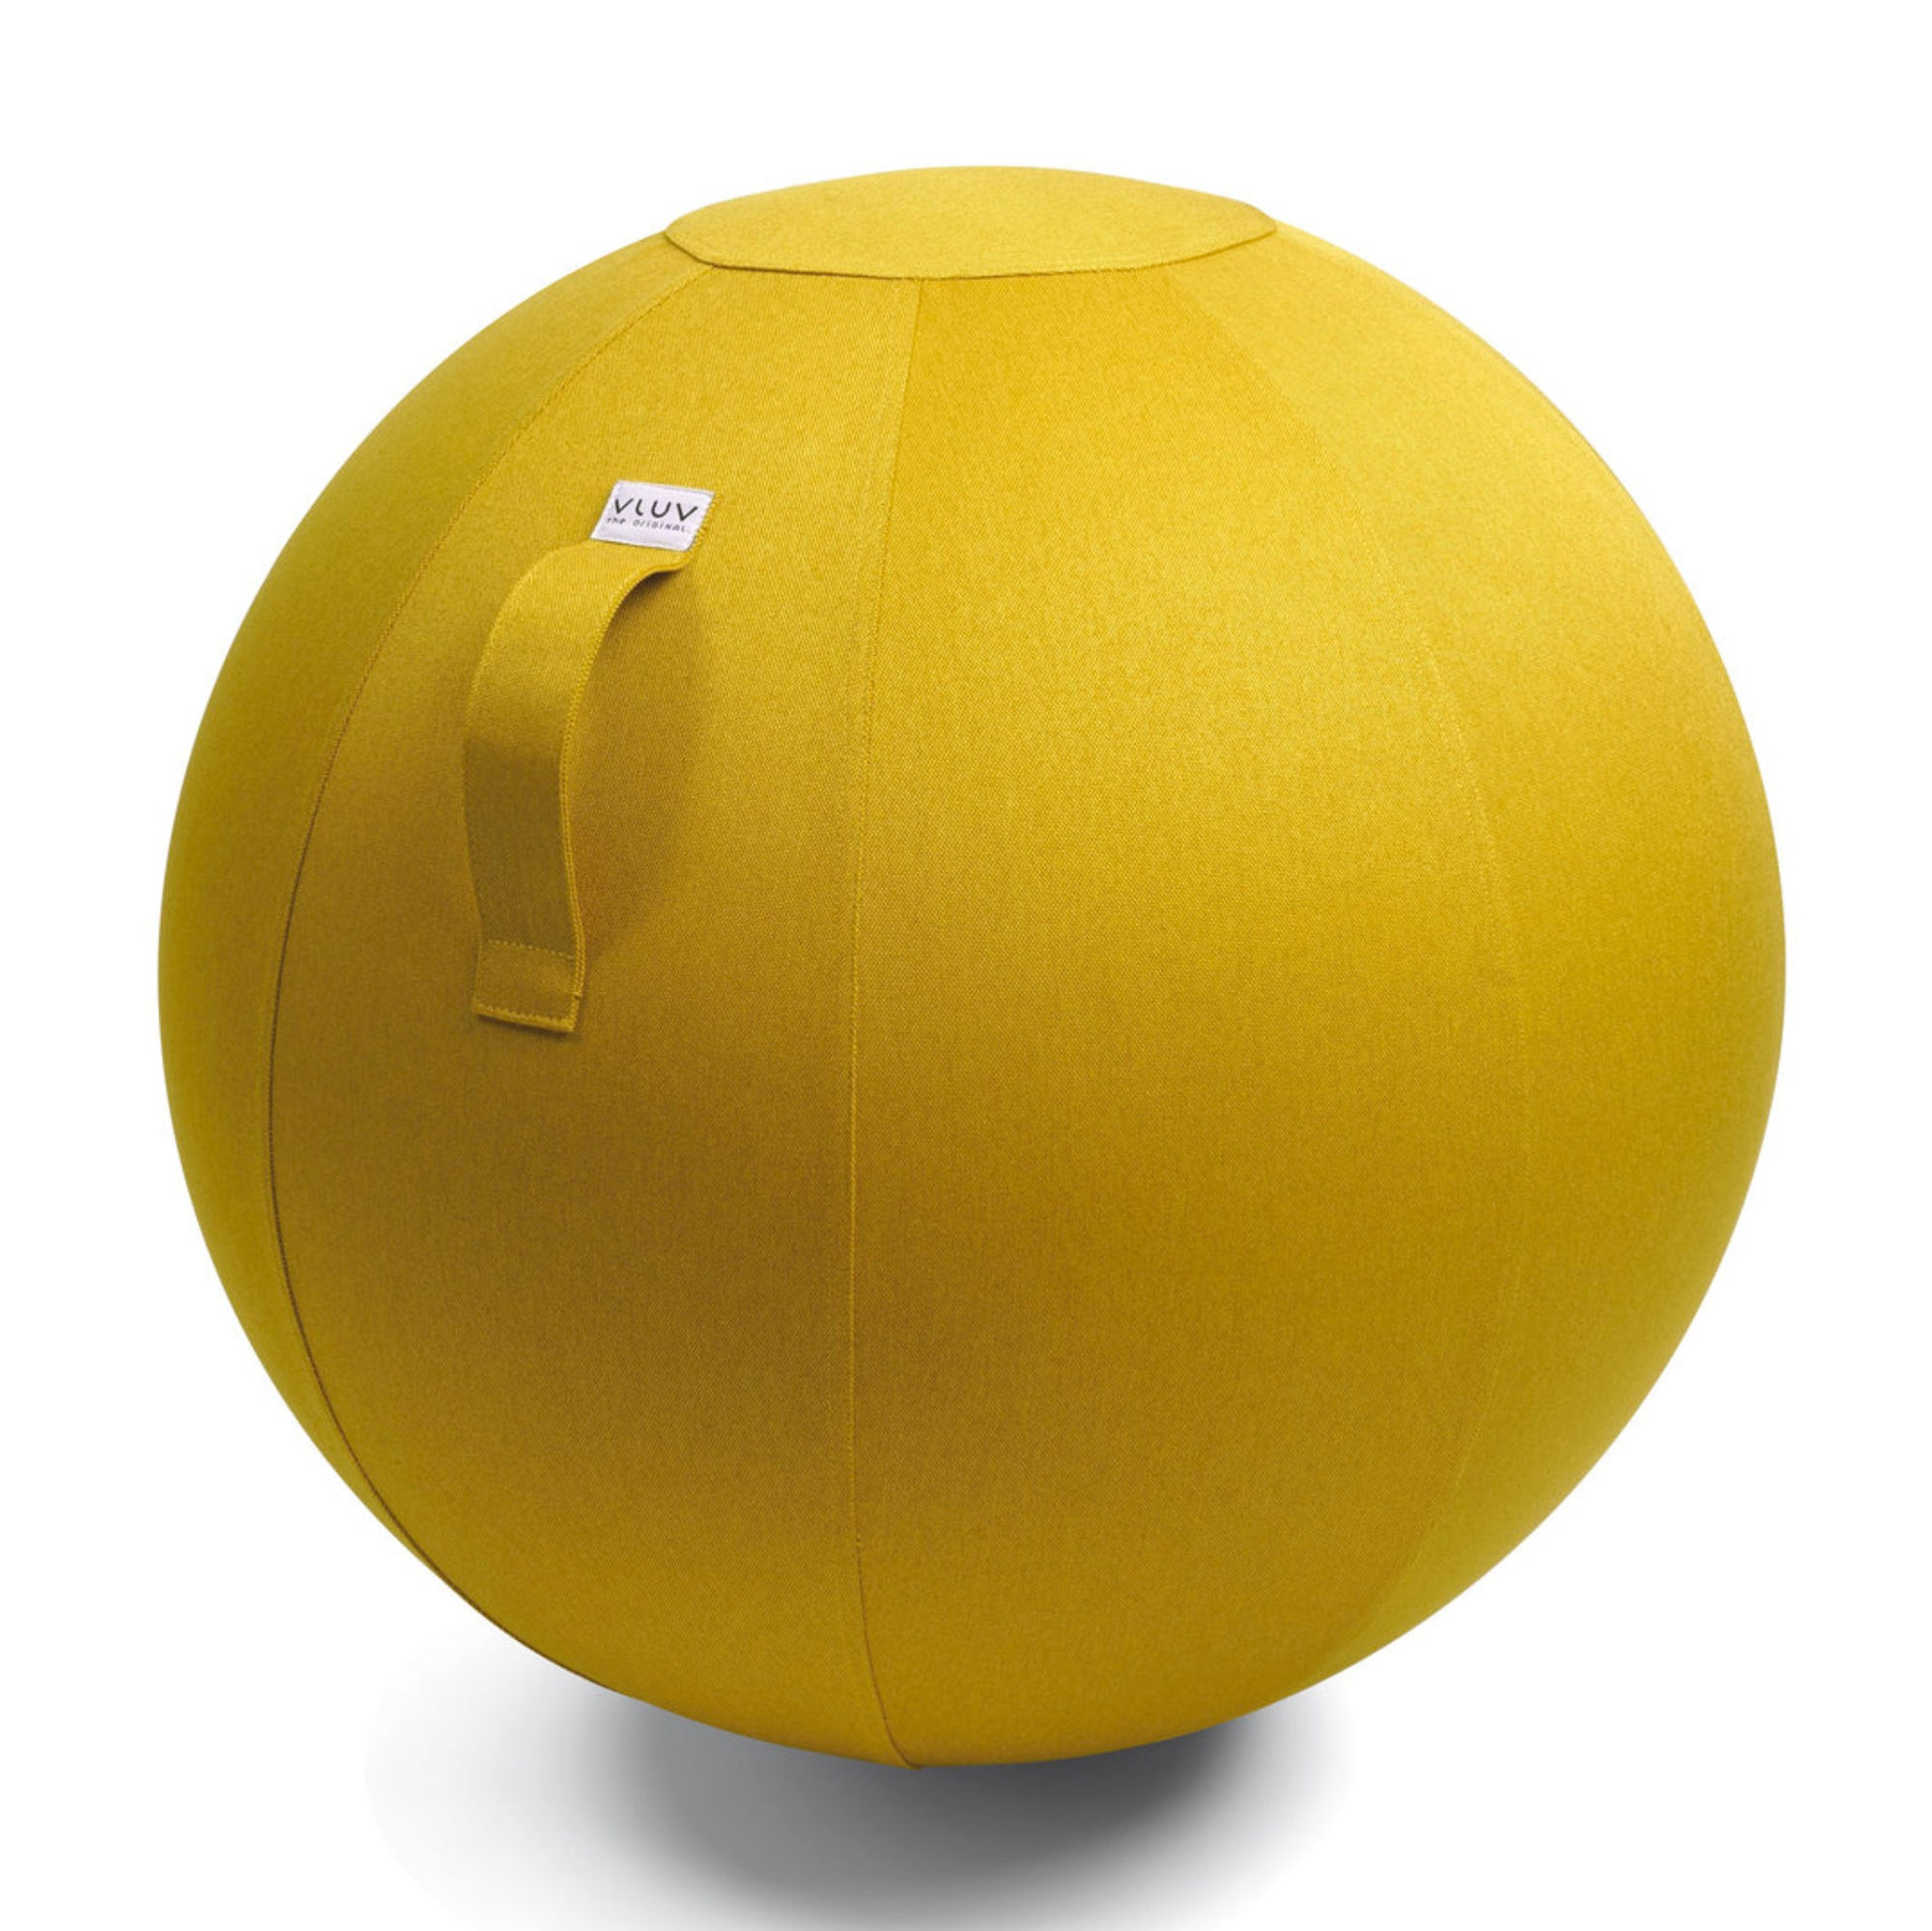 VLUV LEIV active sitting & yoga ball Ø55cm, mustard